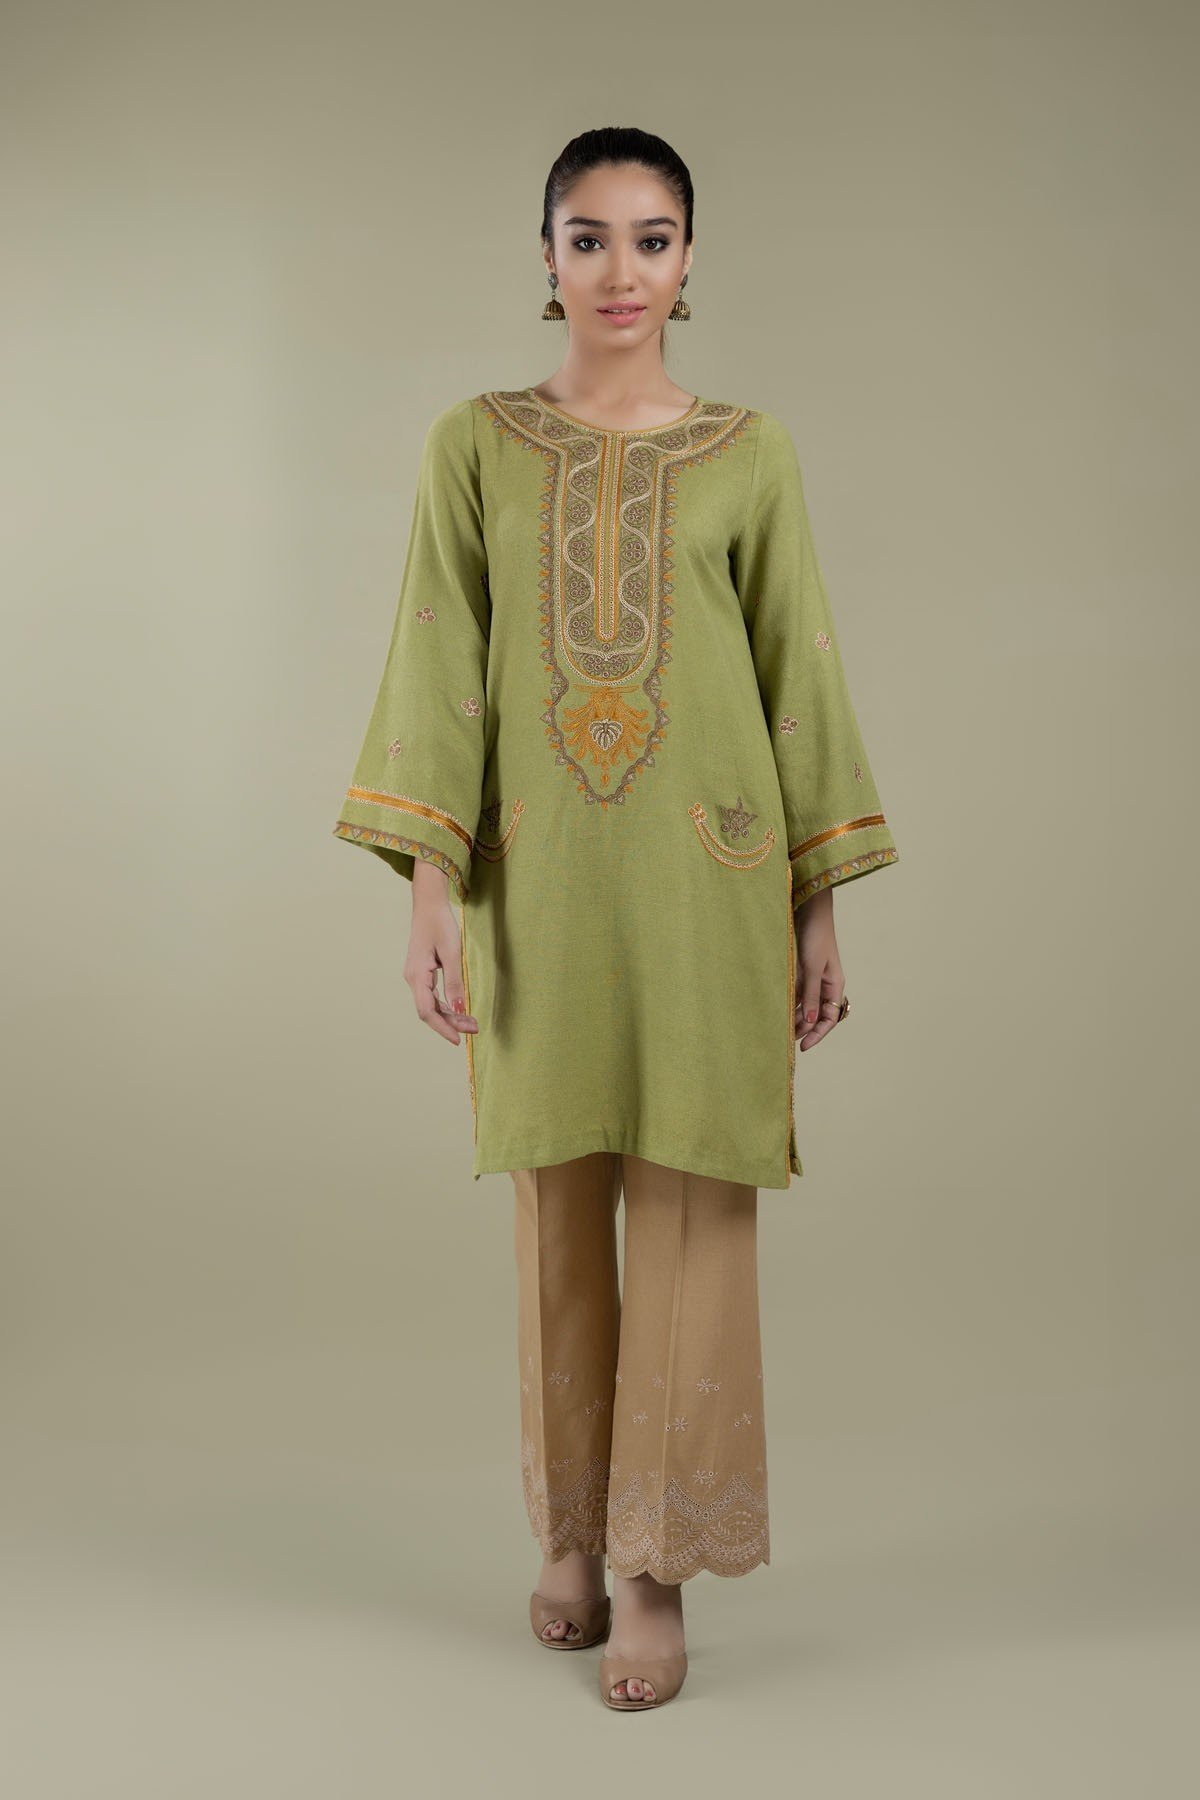 Dyed & Embroidered Kashmiri phiran green